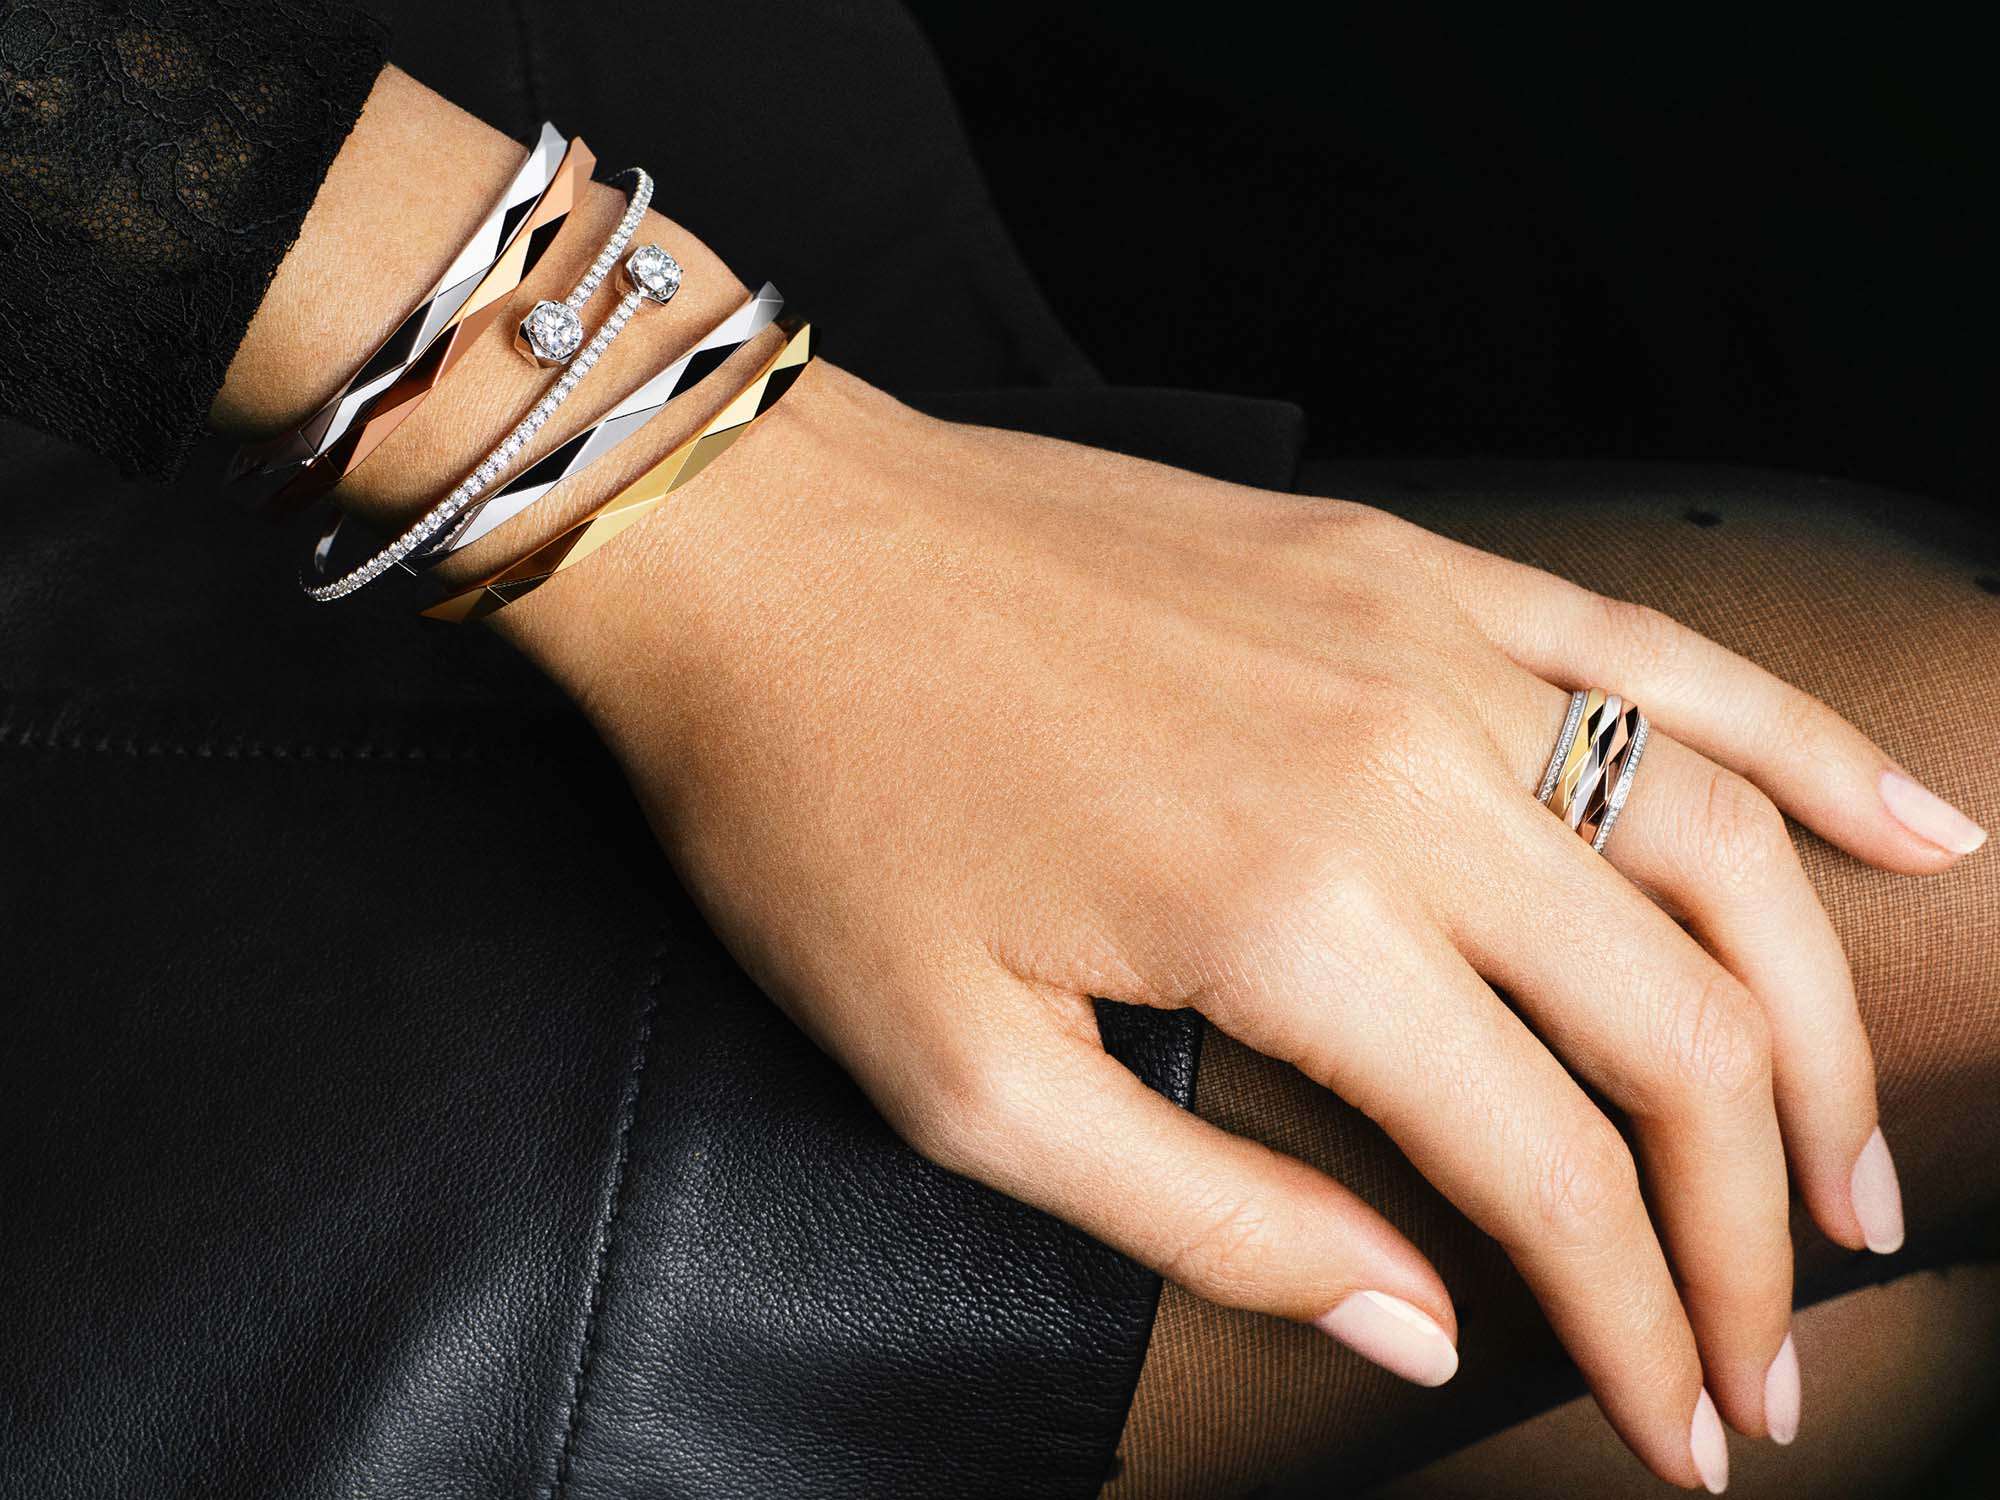 Model wears Laurence Graff Signature jewellery collection Wraparound Diamond Bangle and Laurence Graff Signature Triple Spinning Diamond Band